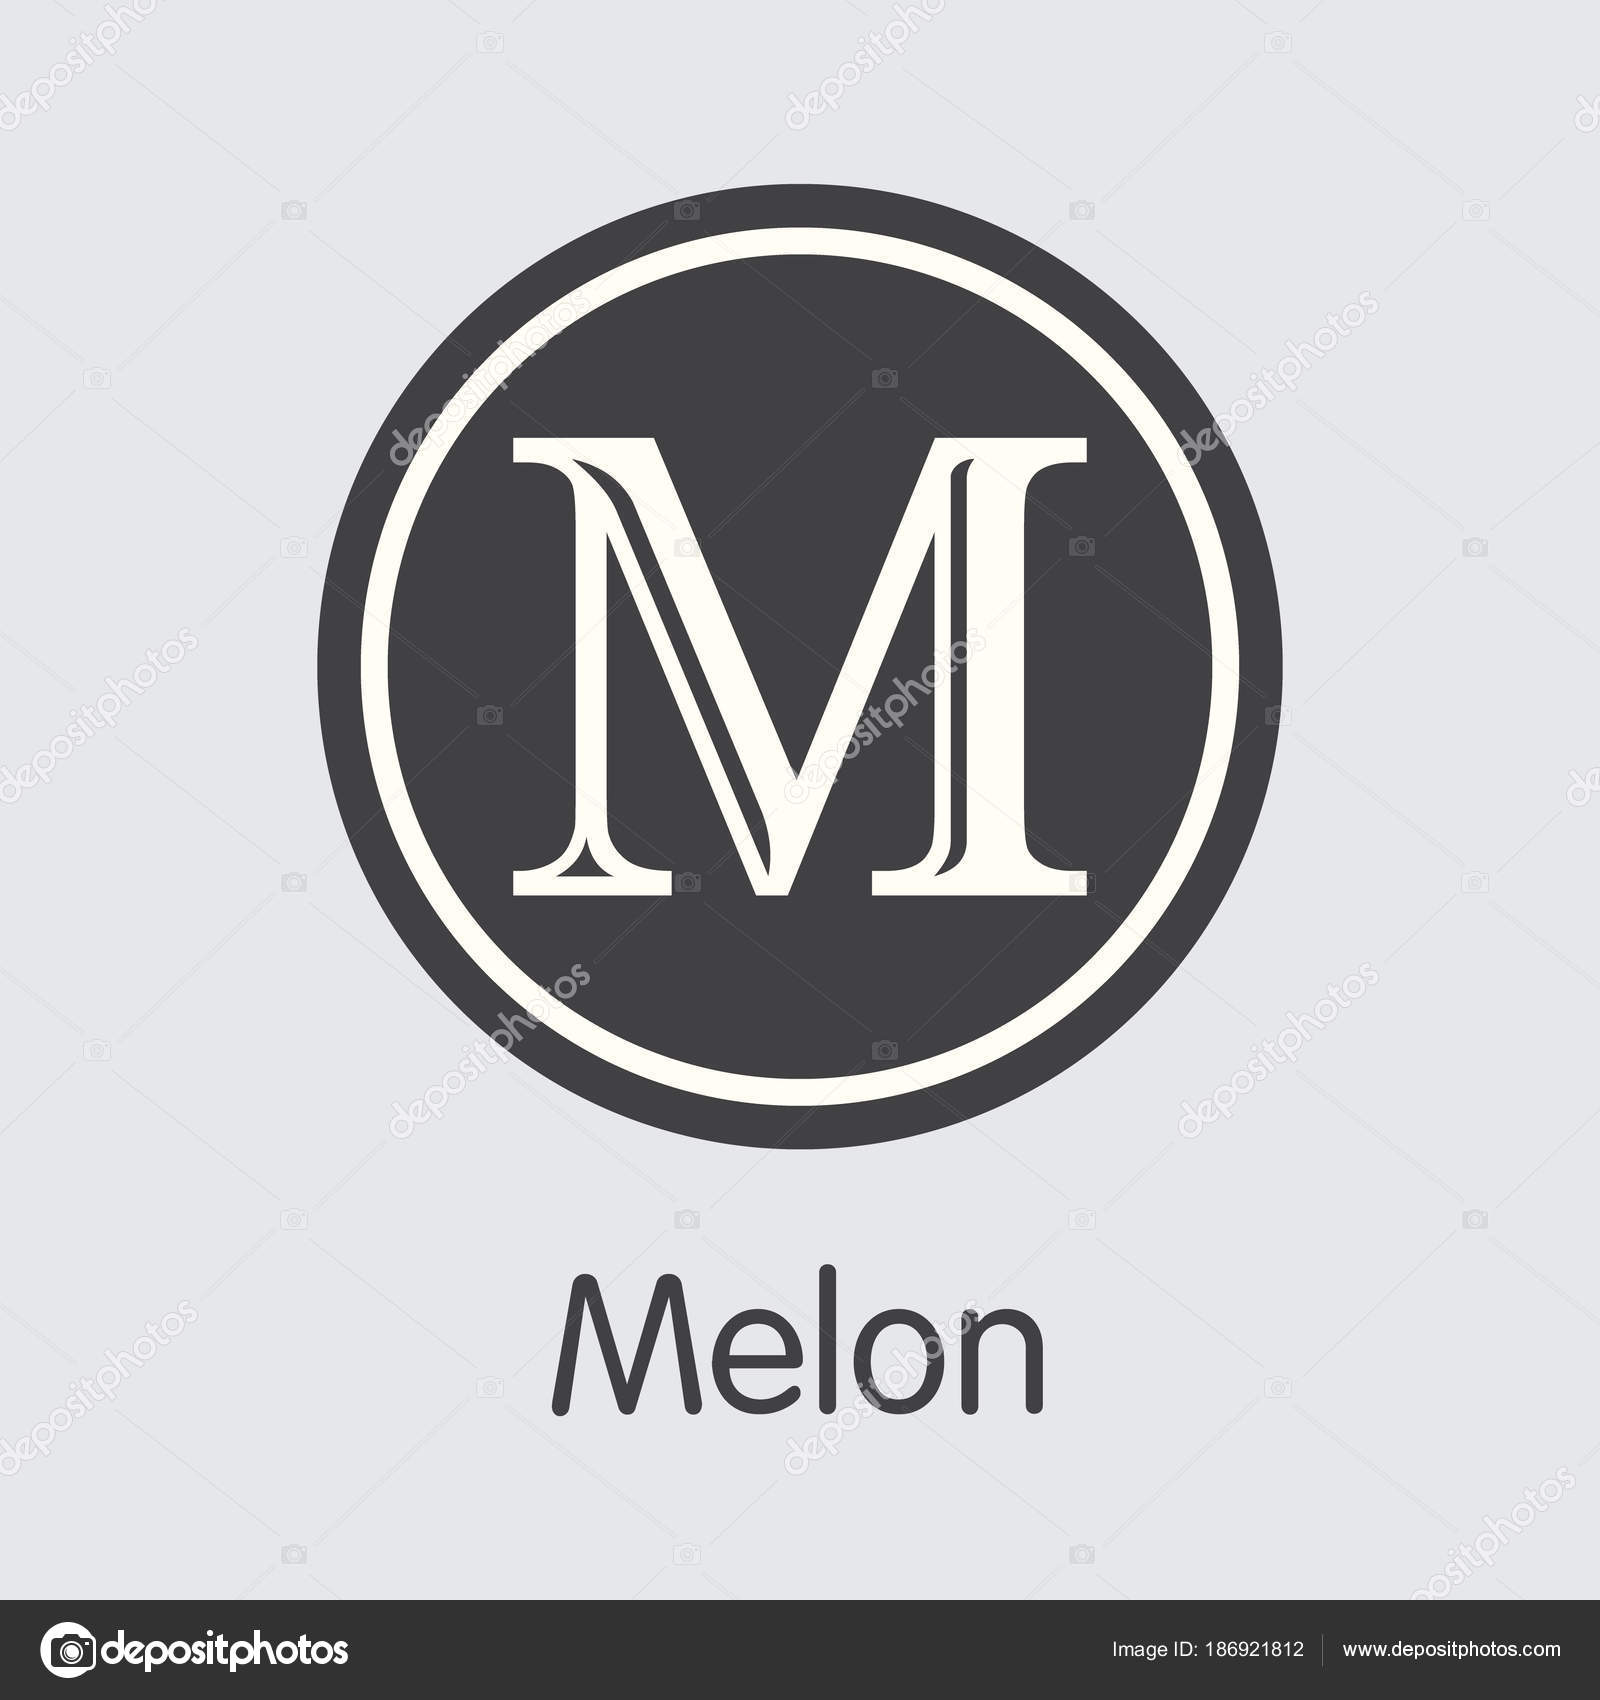 Melon Crypto Currency Coin Vector Coin Symbol Of Mln Stock